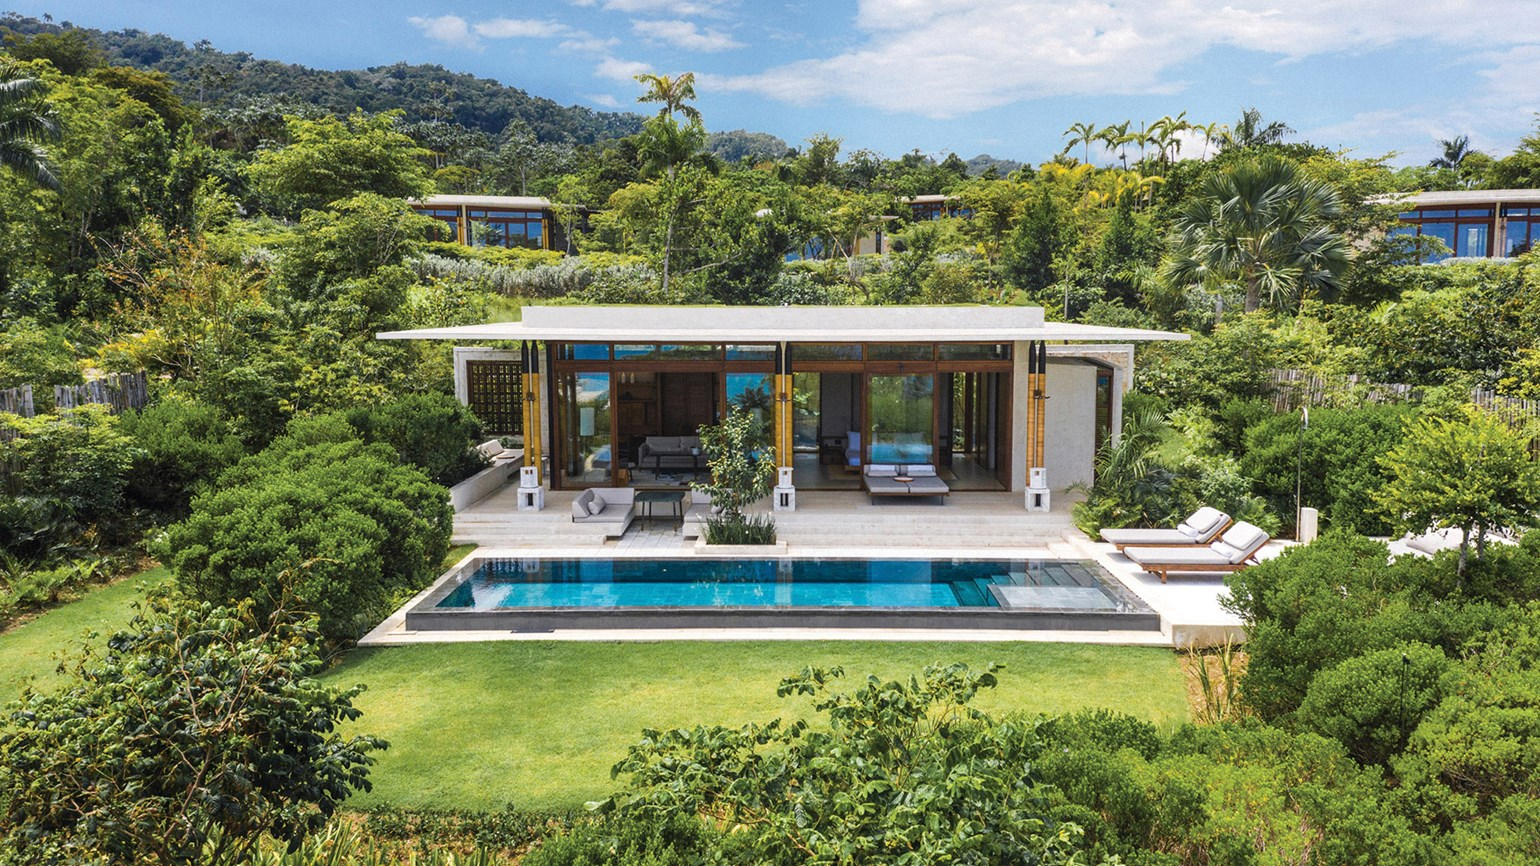 Two Caribbean resorts made the most of Covid closures